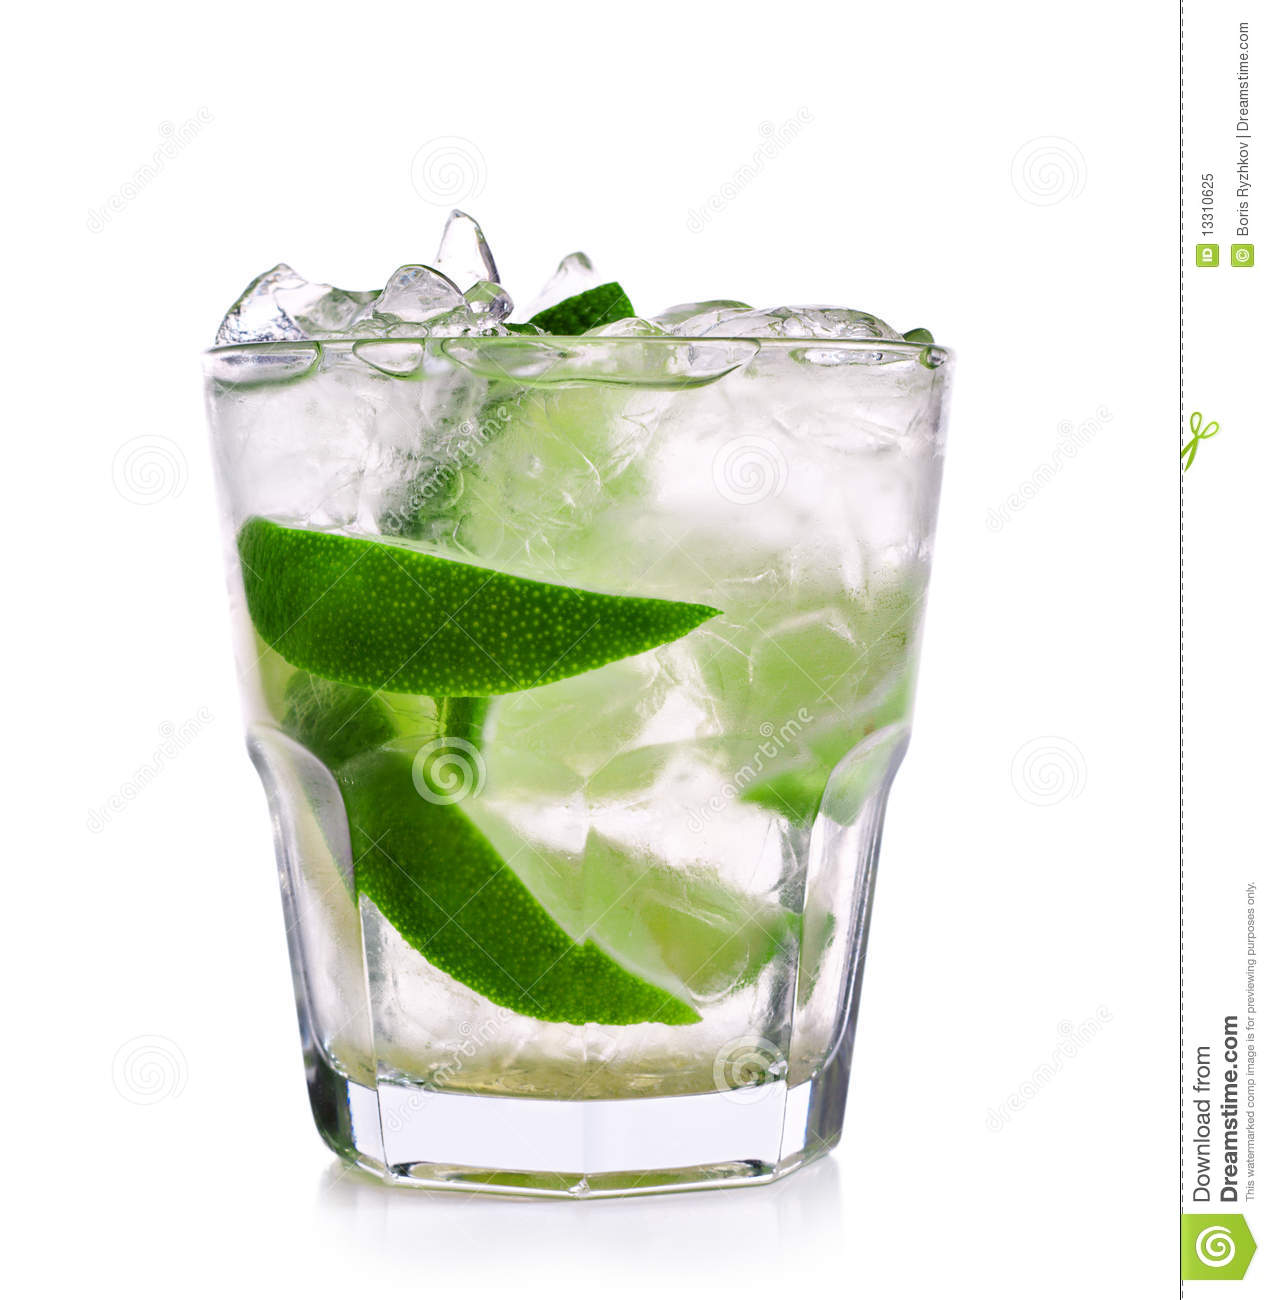 Caipirinha cocktail  Cocktail - Caipirinha Lizenzfreies Stockfoto - Bild: 13310625